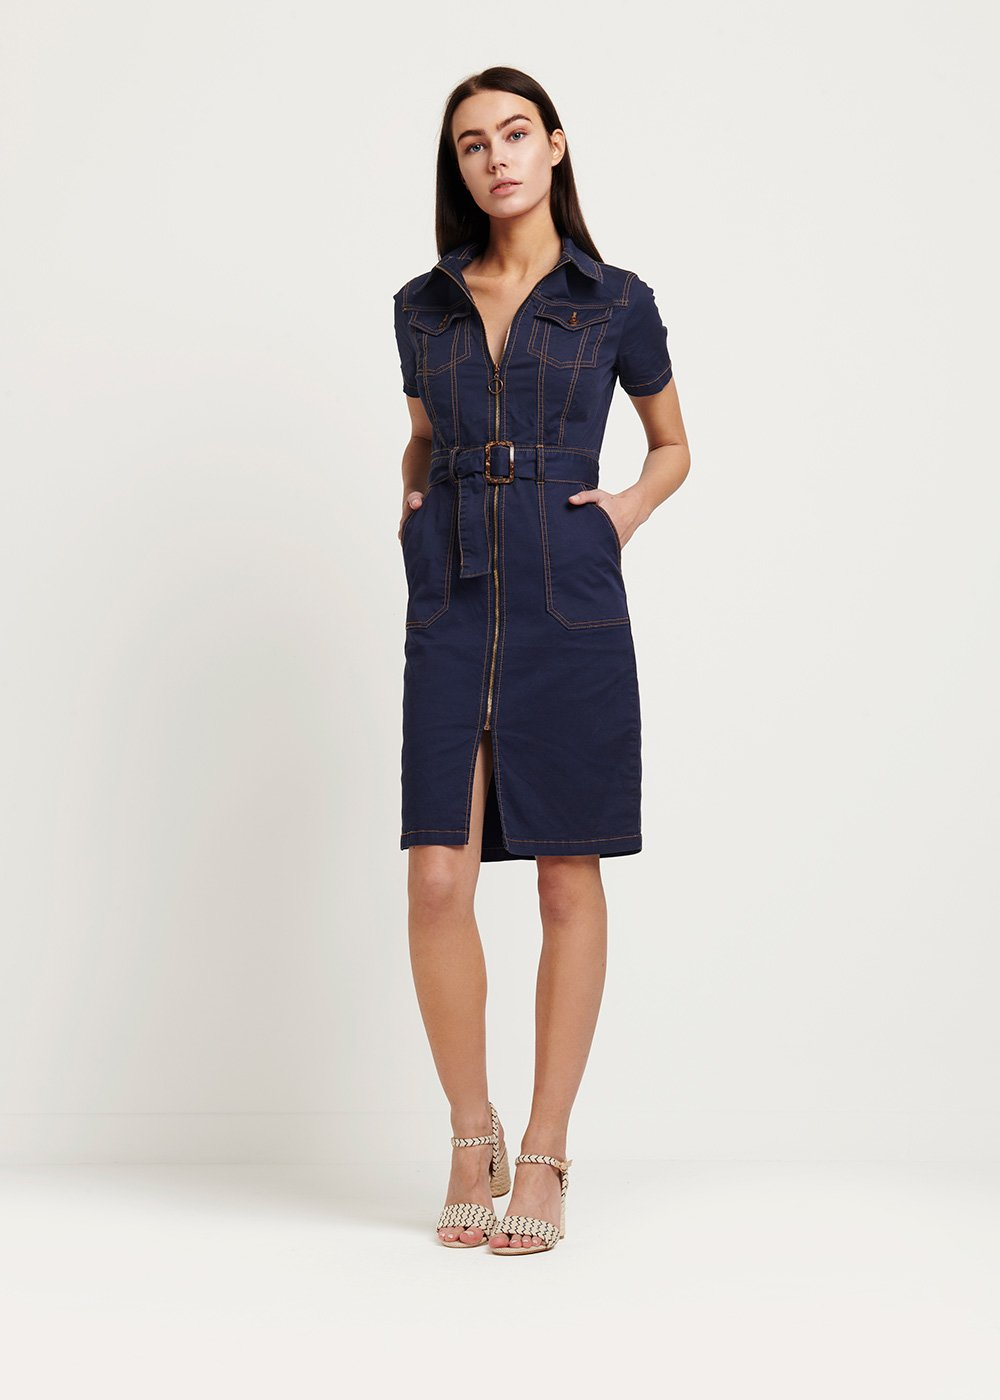 Amis blue dress with contrasting stitching - Medium Blue - Woman